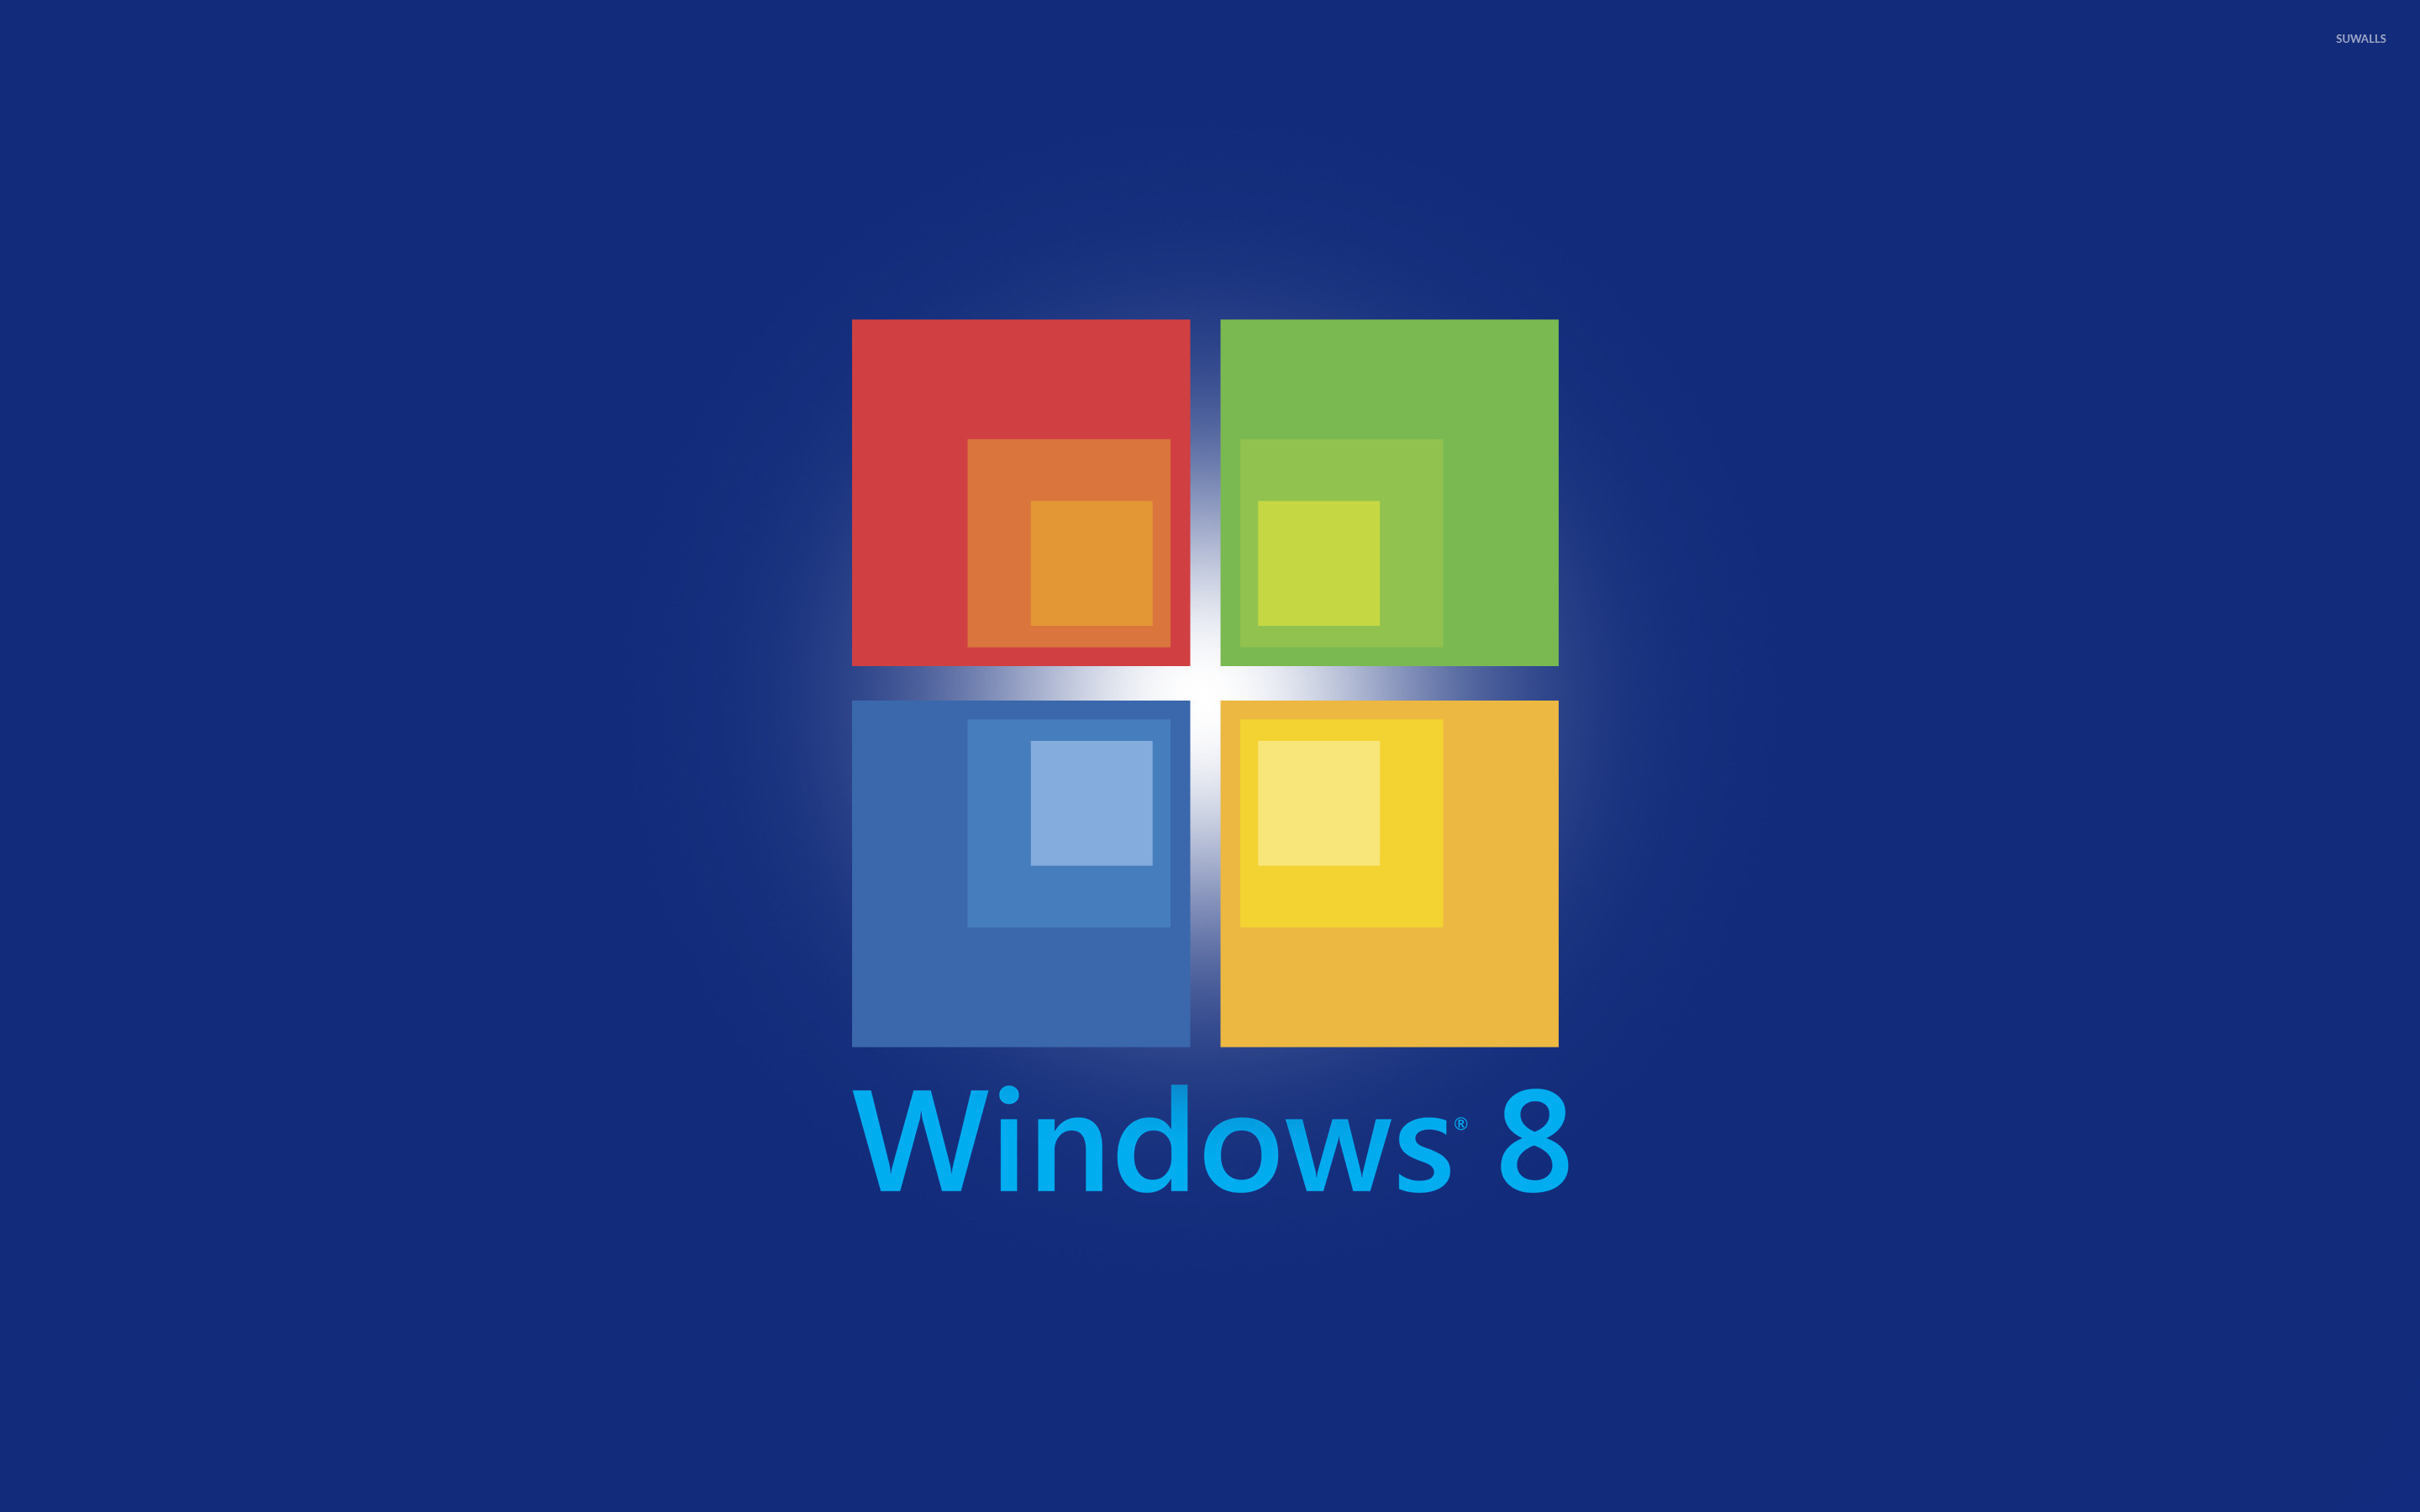 Wallpaper for windows 8 download hd